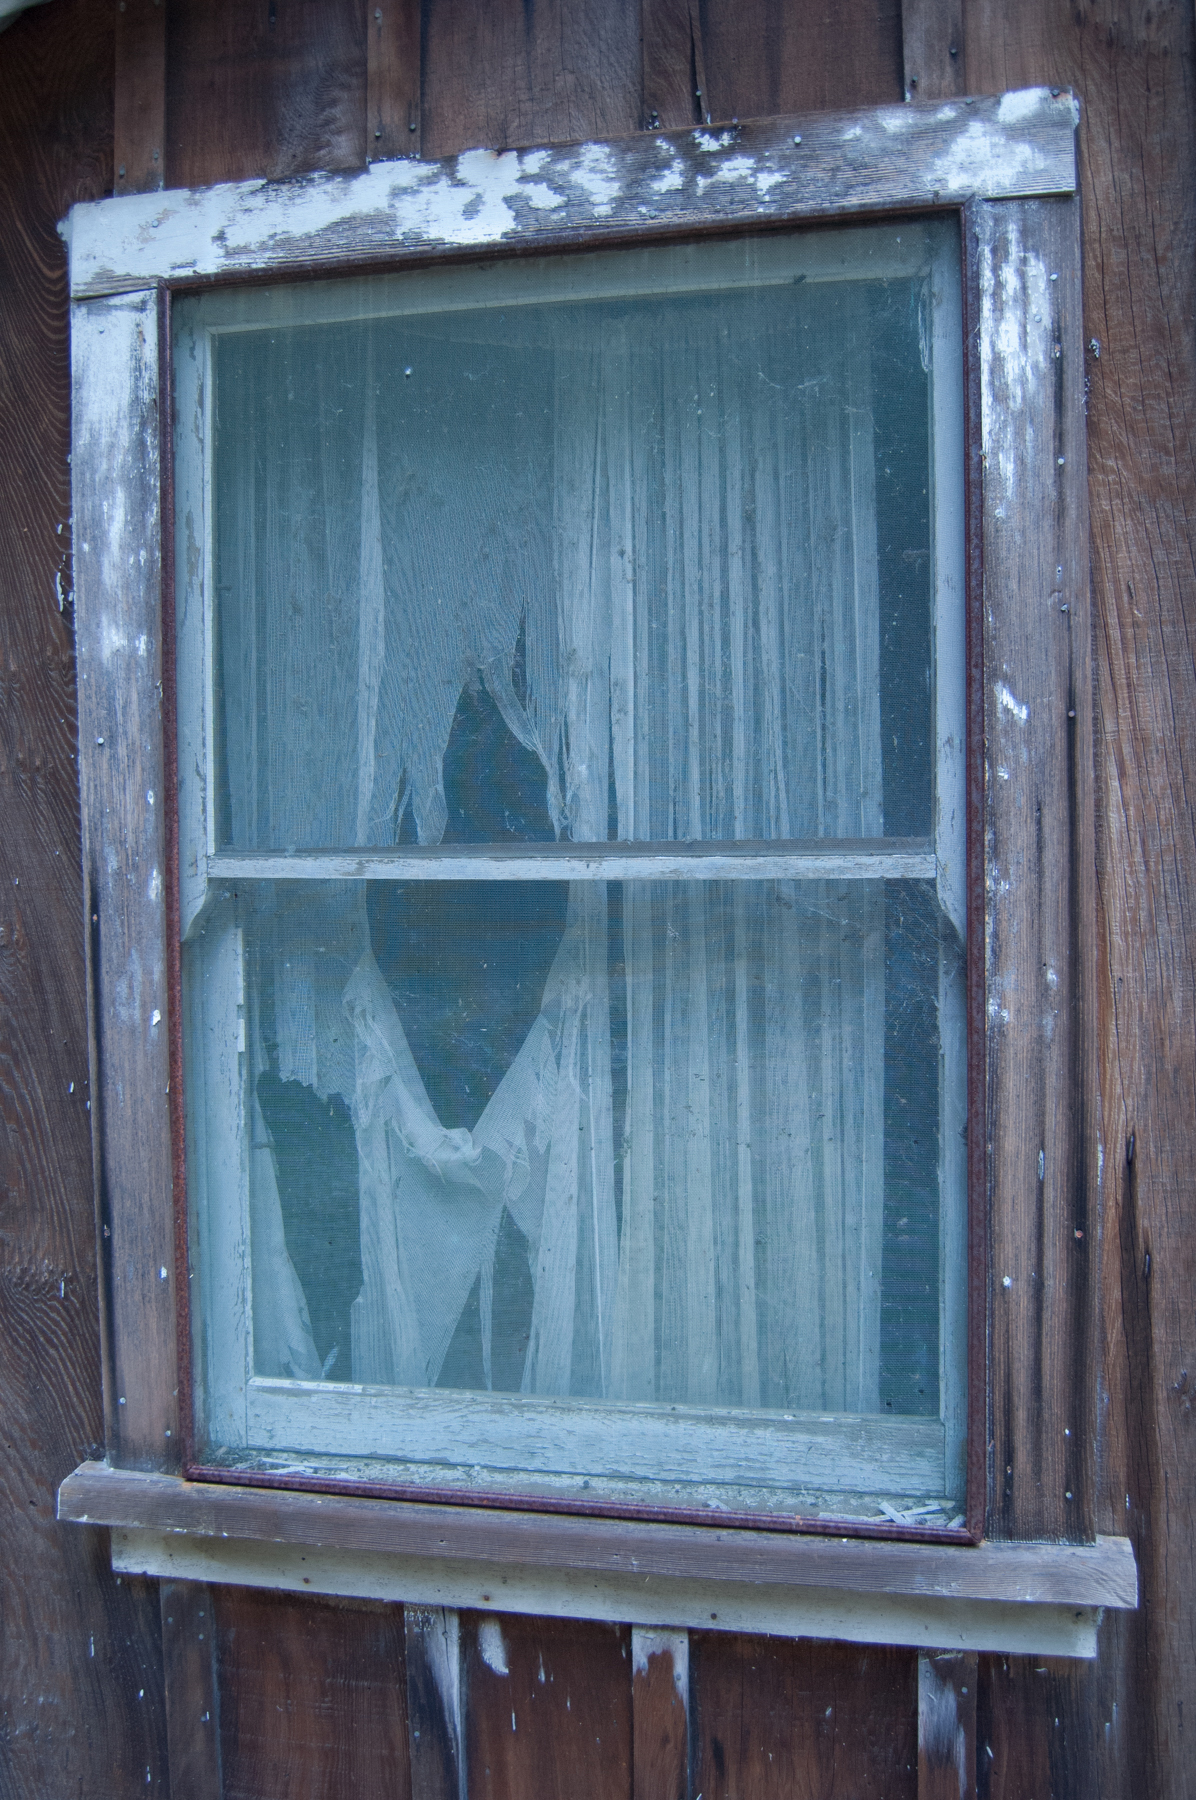 Window with tattered curtain.